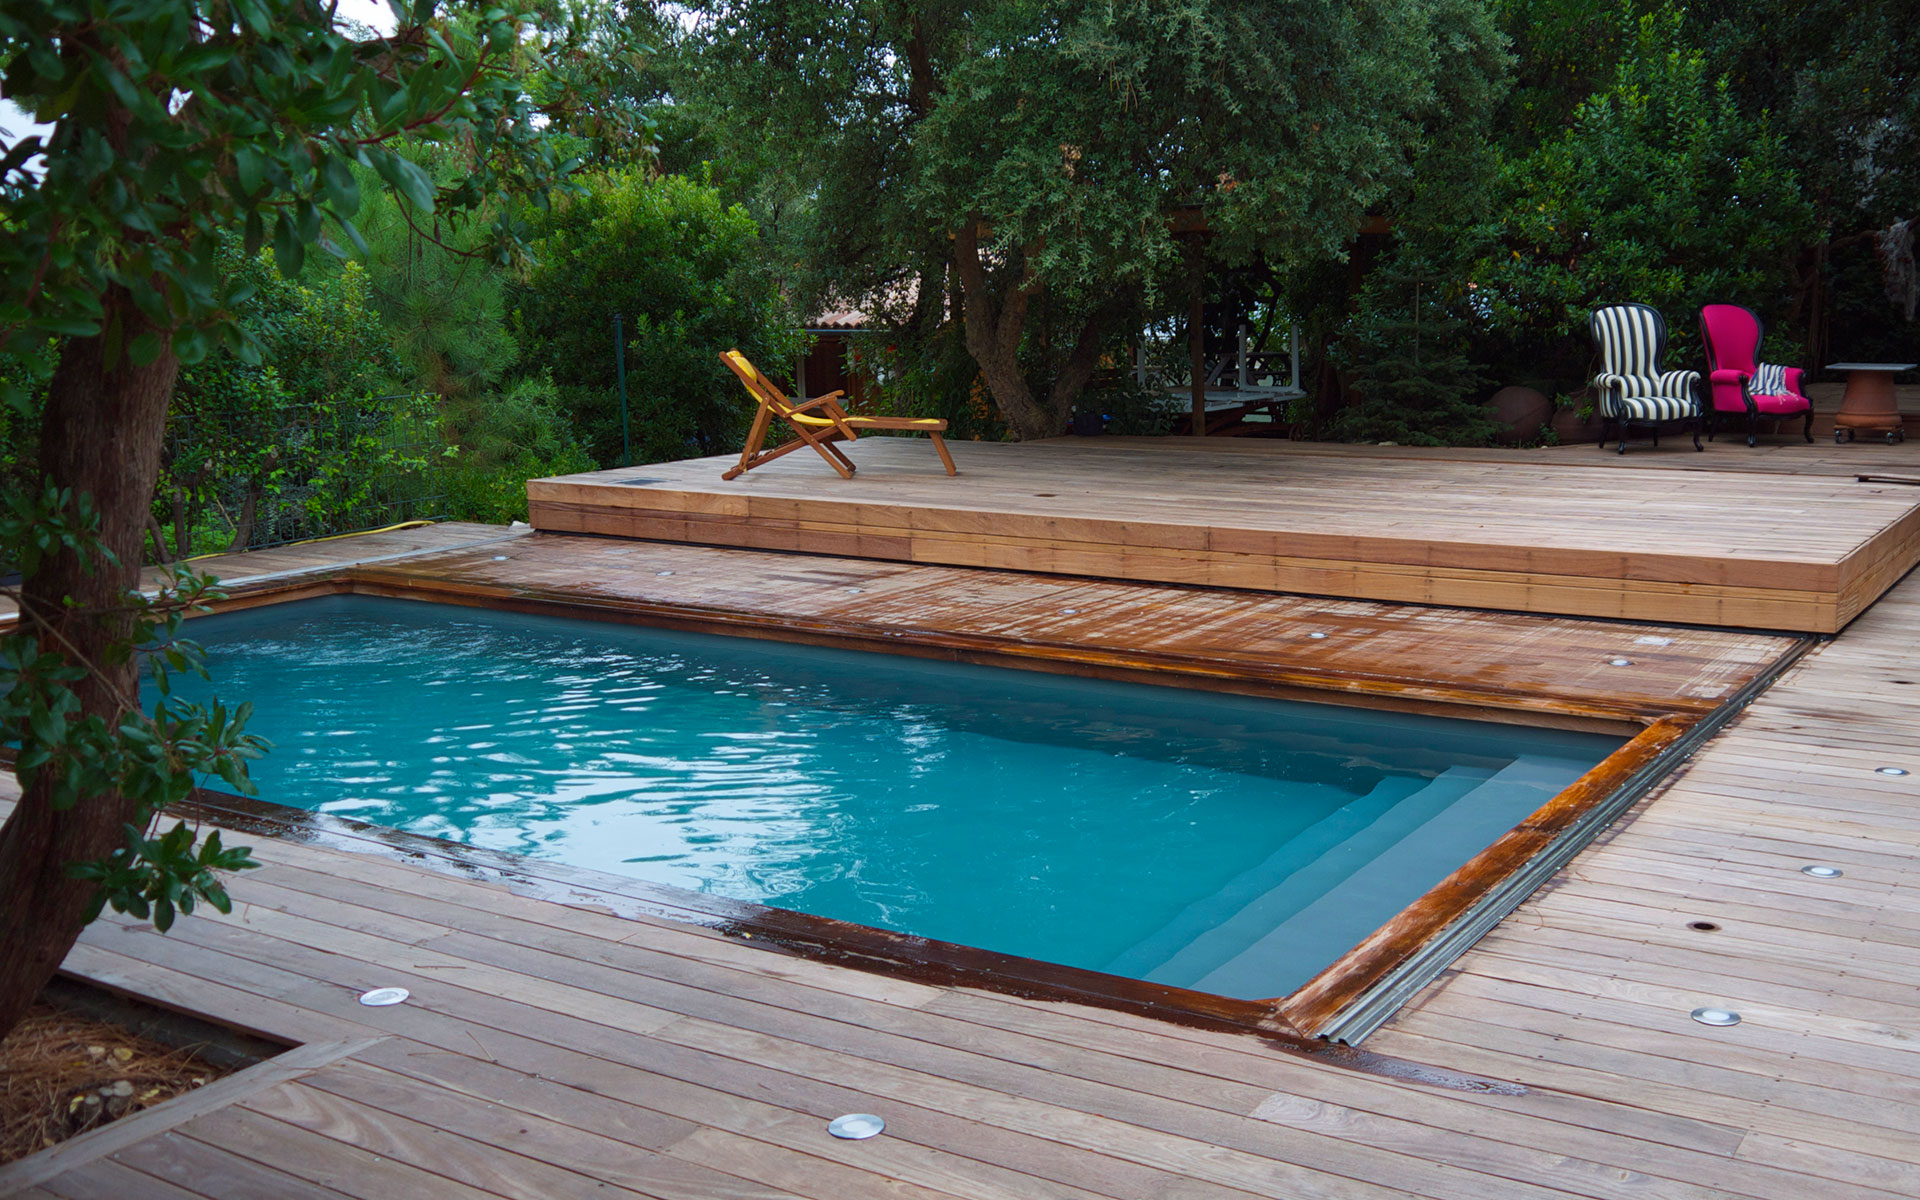 Terrasse mobile pour piscine hidden pool fond mobile for Terrasse coulissante pour piscine prix